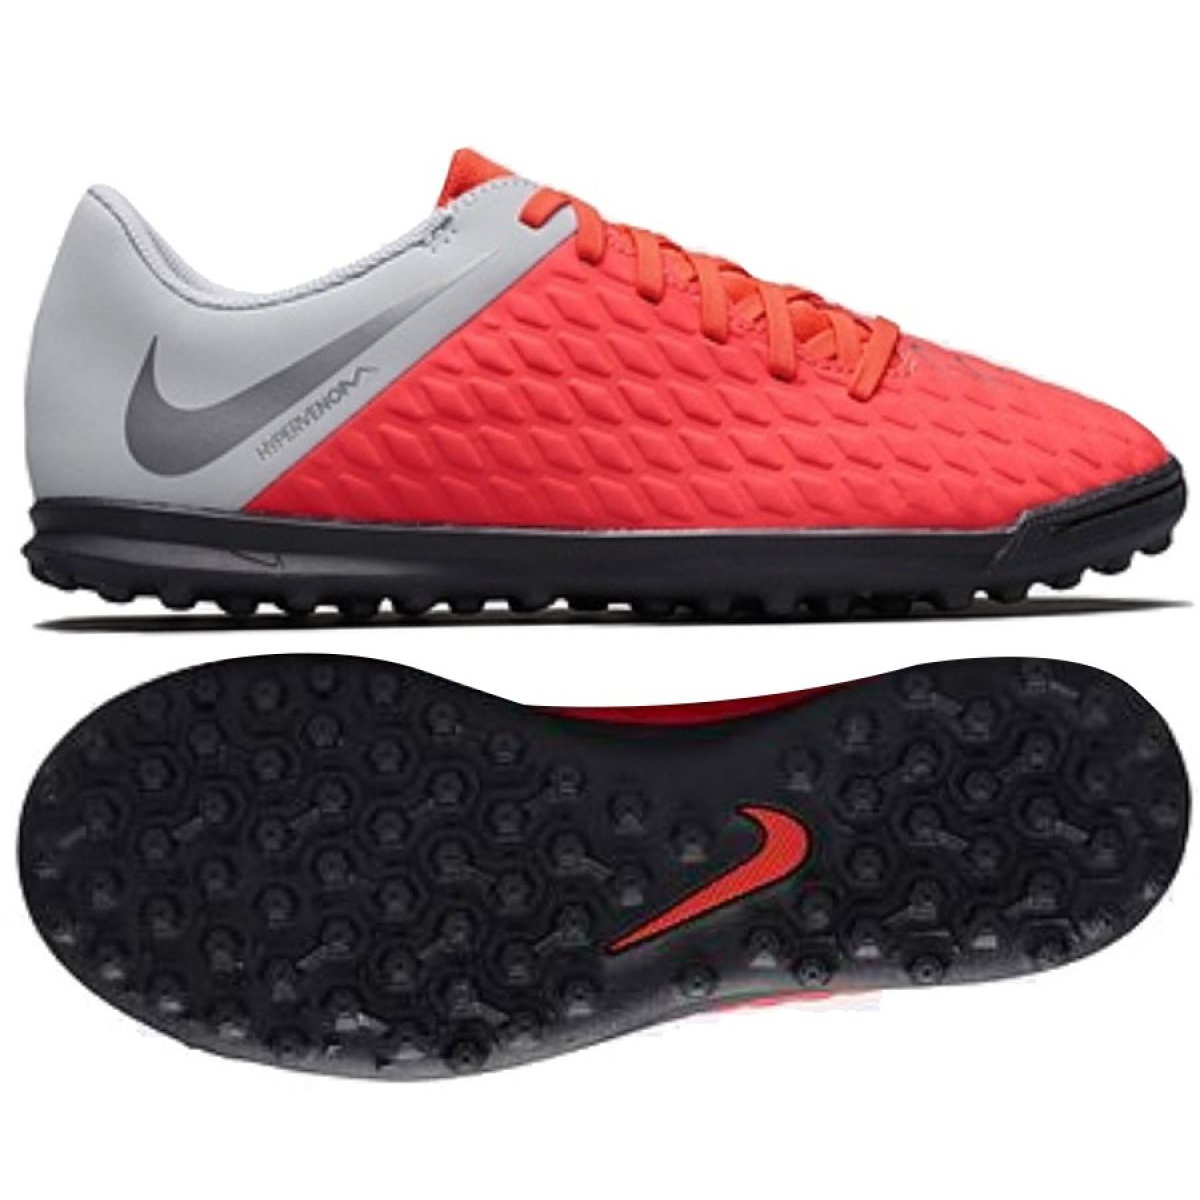 reputable site 32272 deec4 Nike Hypervenom Phantomx 3 Club Tf Jr AJ3790-600 Football Boots